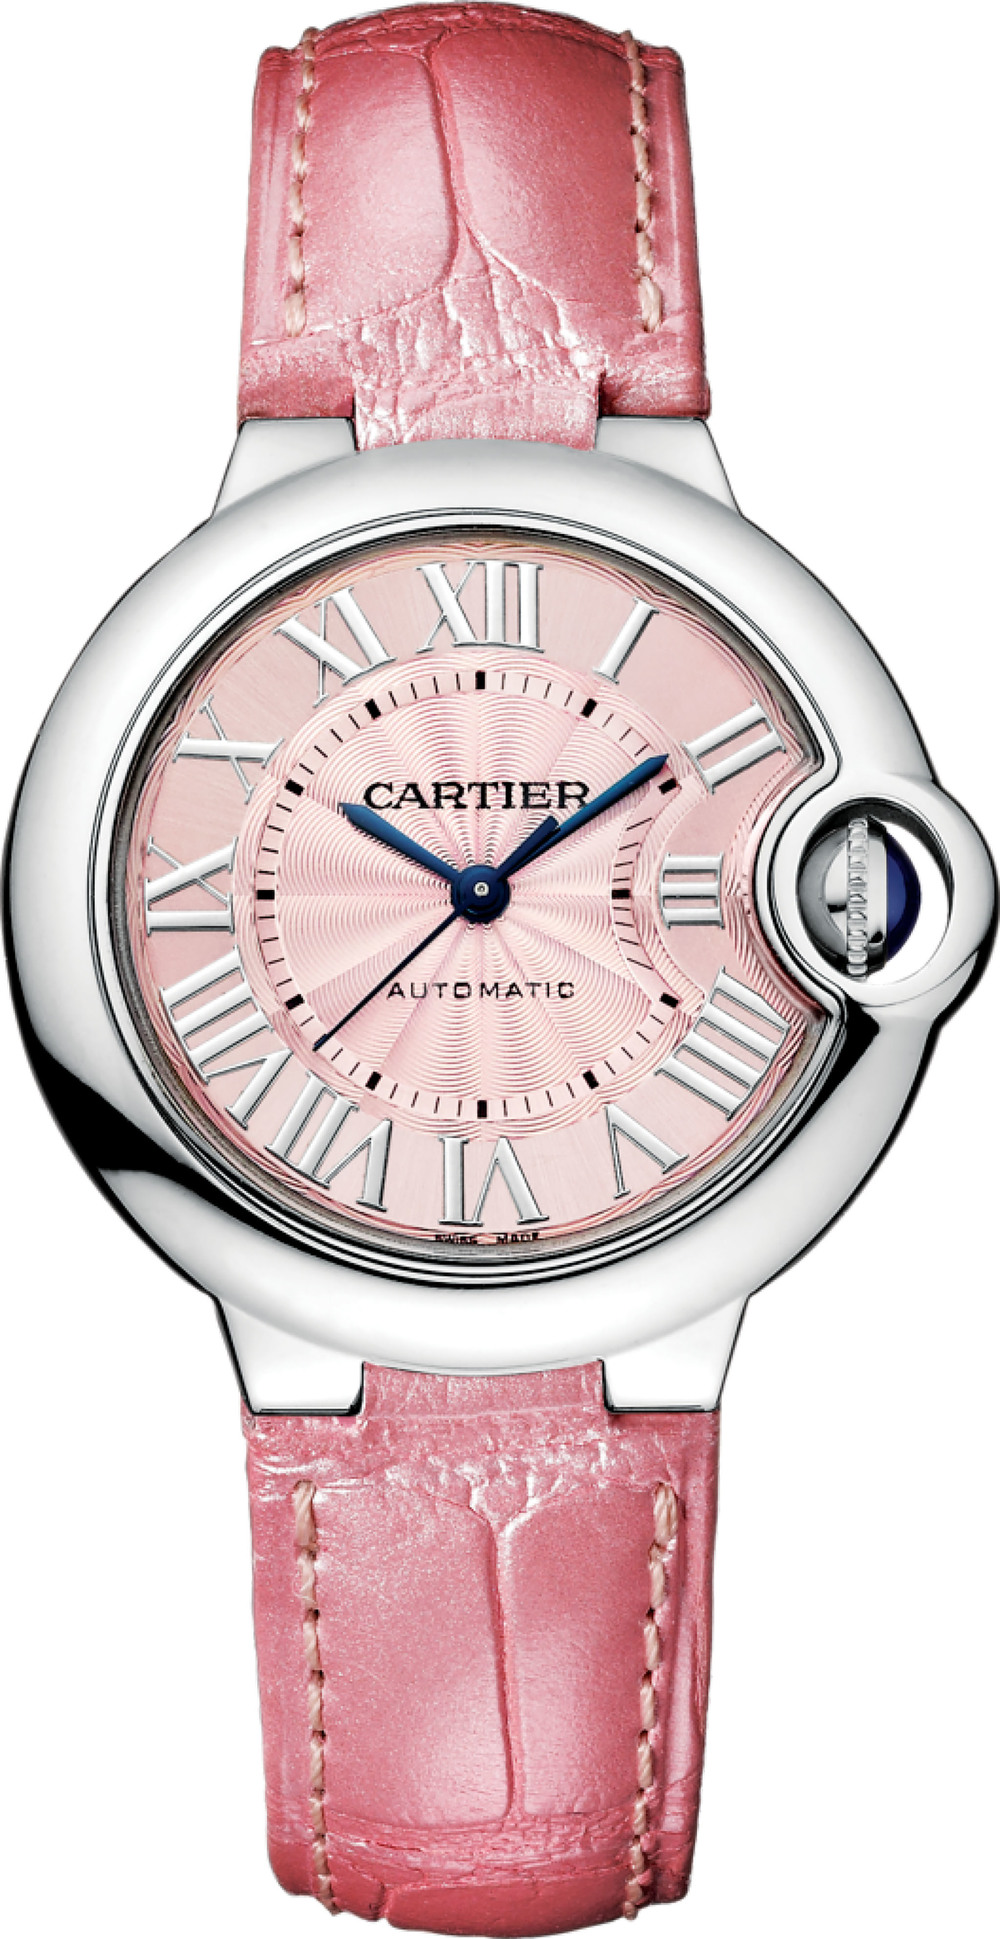 Cartier Ballon Bleu Watch $6,950